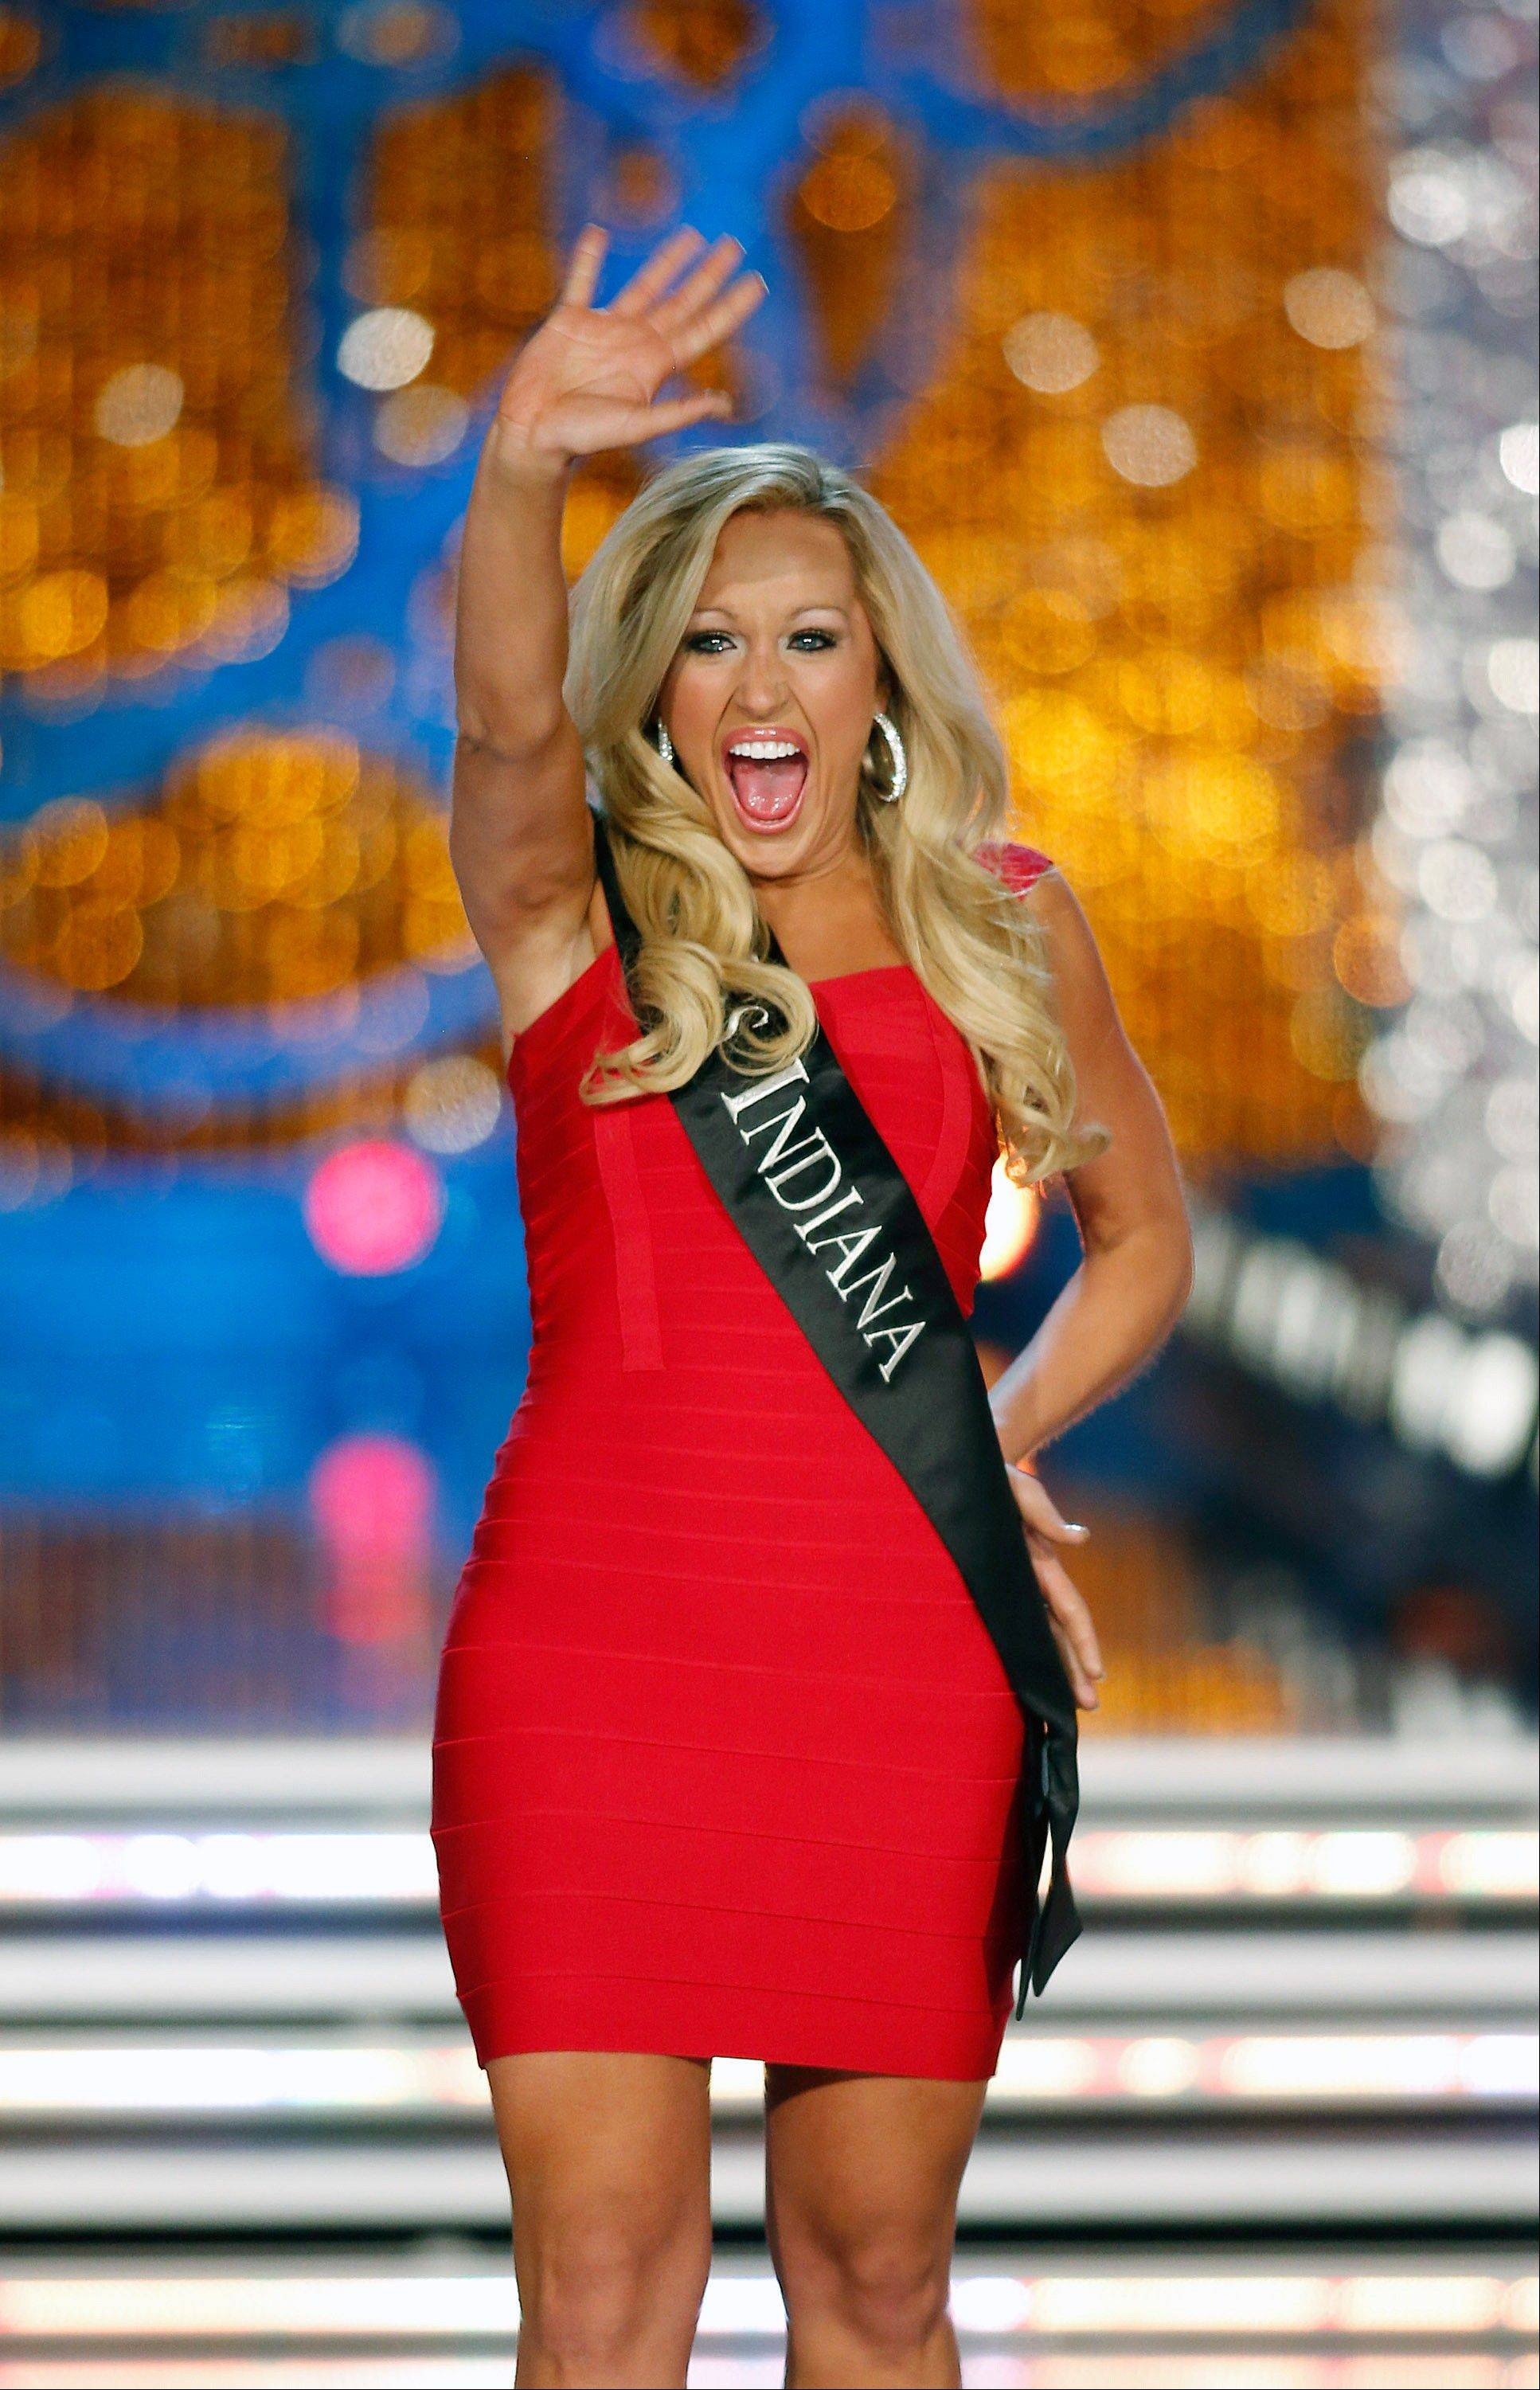 Miss Indiana MerrieBeth Cox competes in the Miss America pageant on Saturday, Jan. 12, 2013, in Las Vegas.